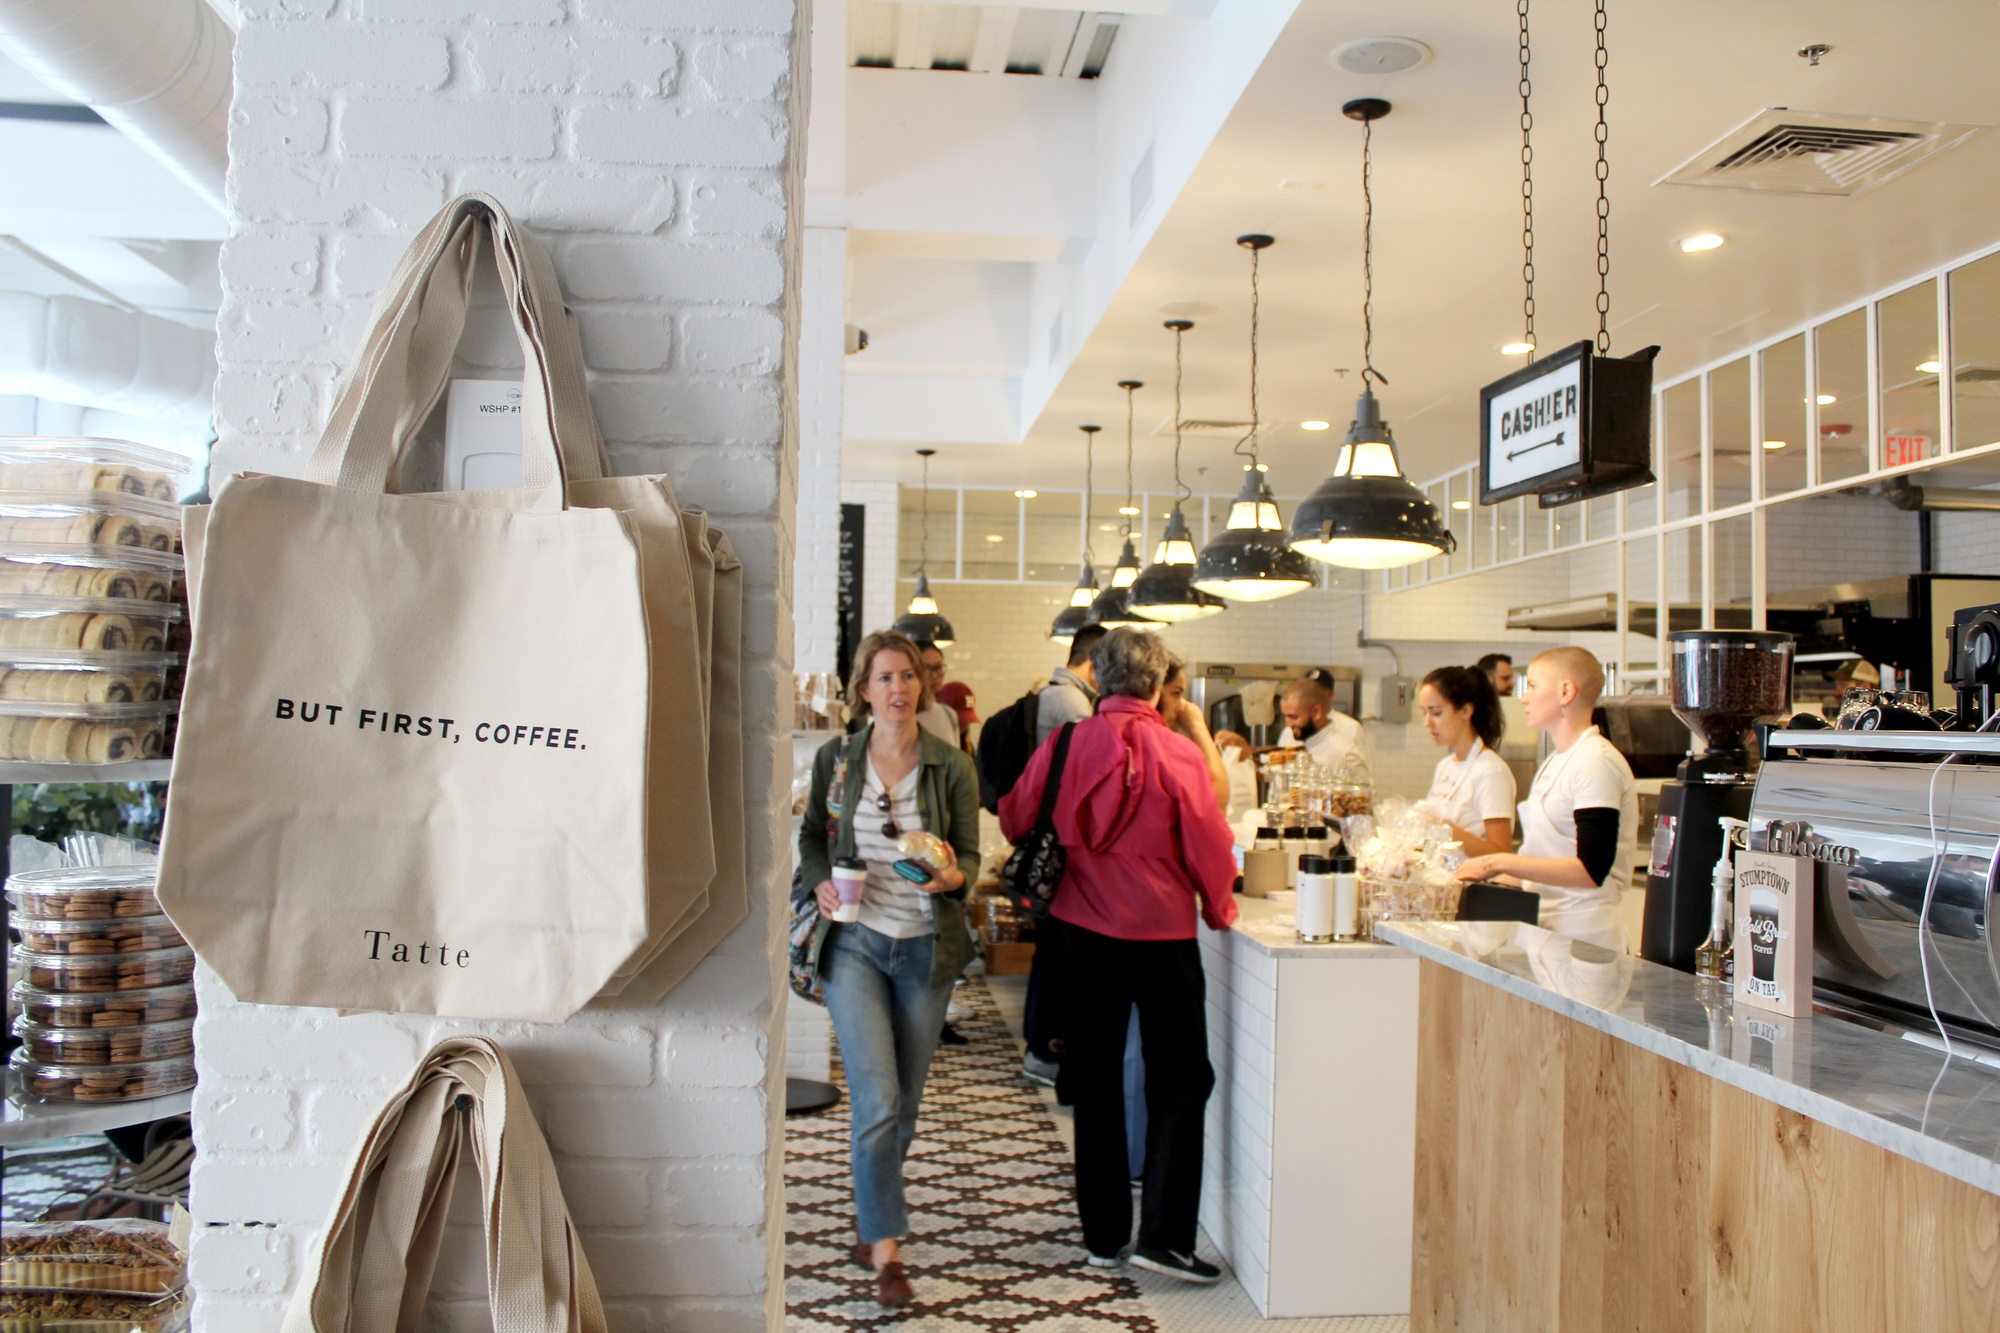 Boston-based bakery Tatte opened its doors in Harvard Square for the first time Tuesday, attracting students and locals for baked goods, coffee, and sandwiches.